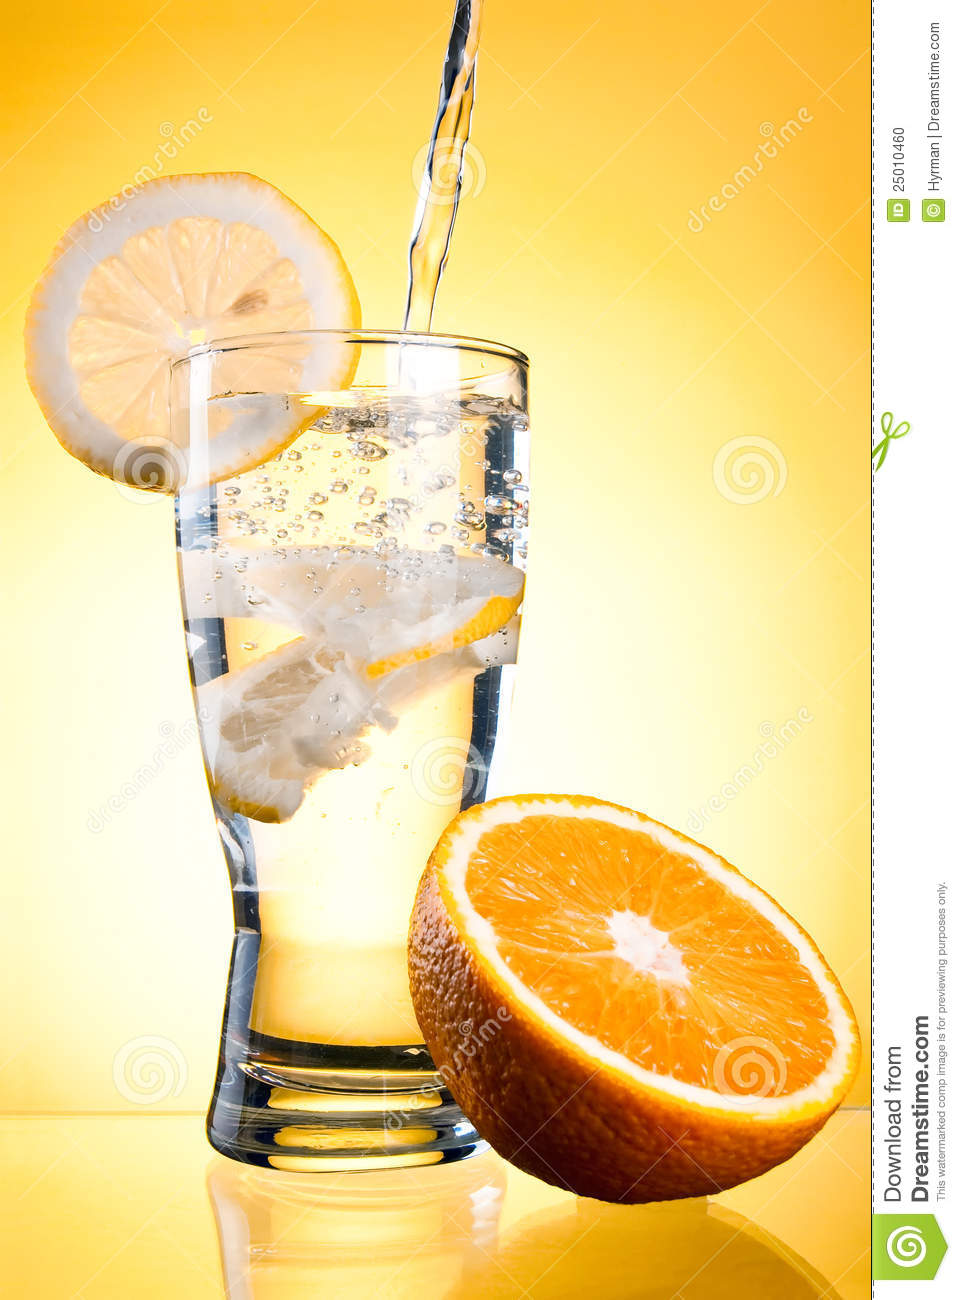 Pouring of mineral water in glass with lemon